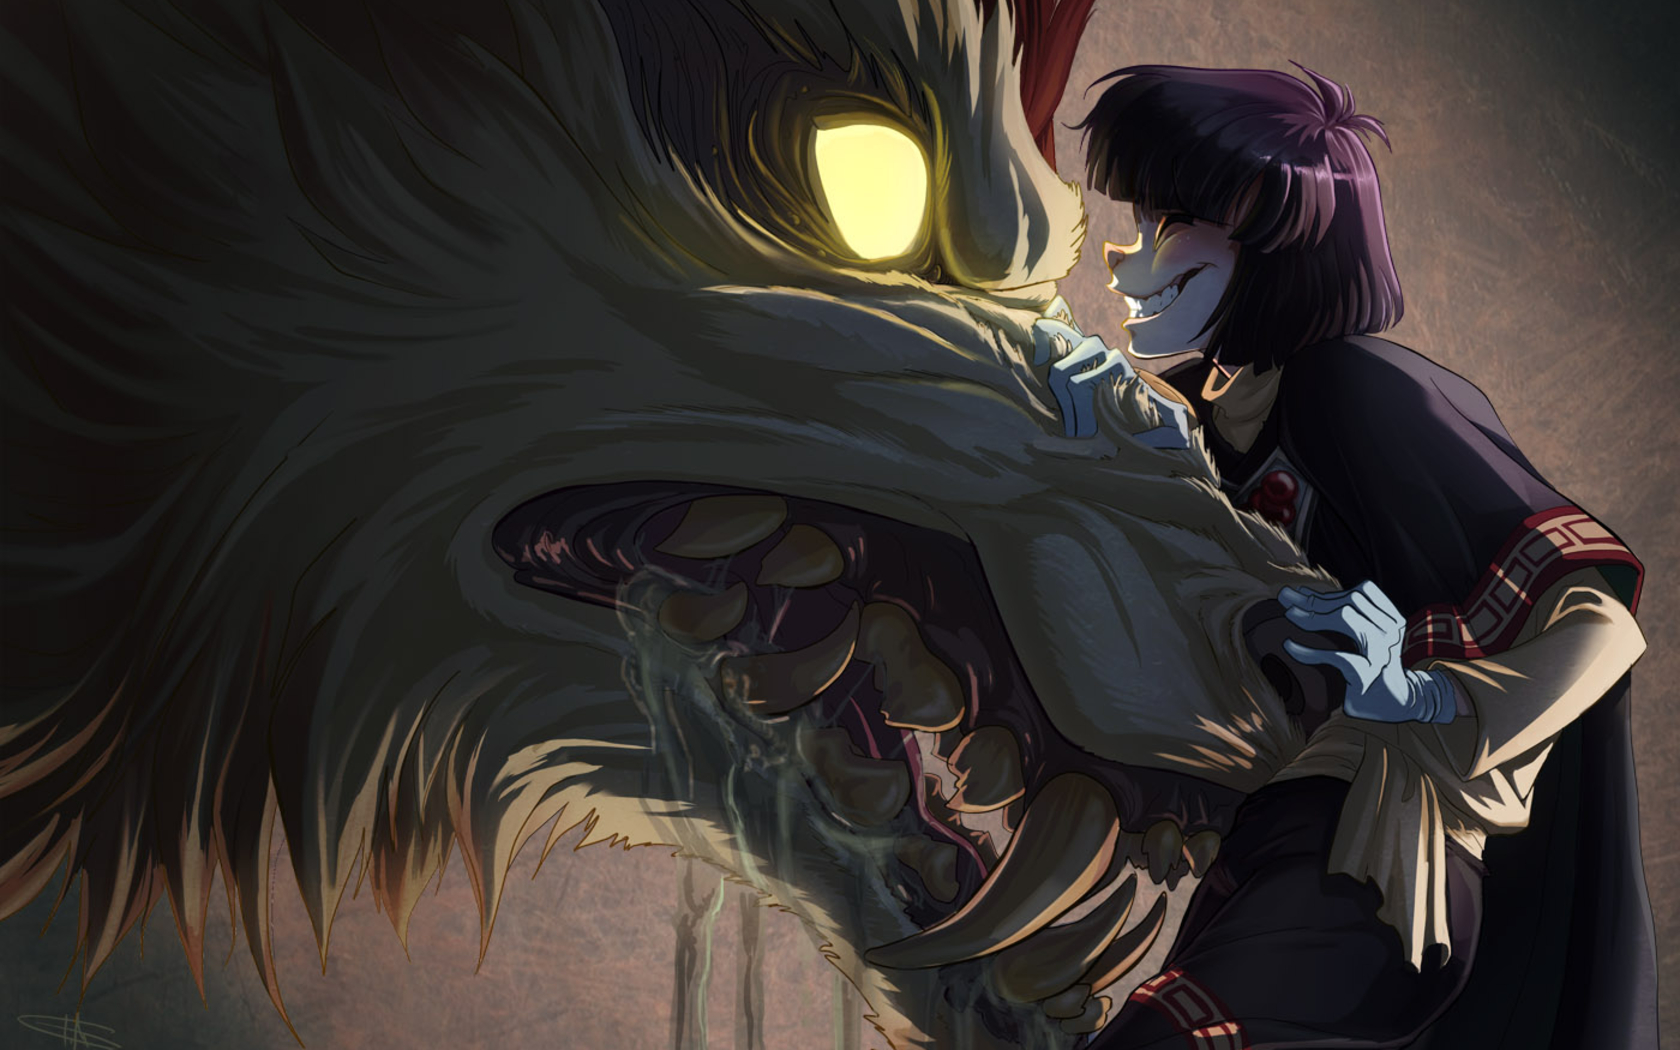 66 Anime Wolf Wallpaper On Wallpapersafari